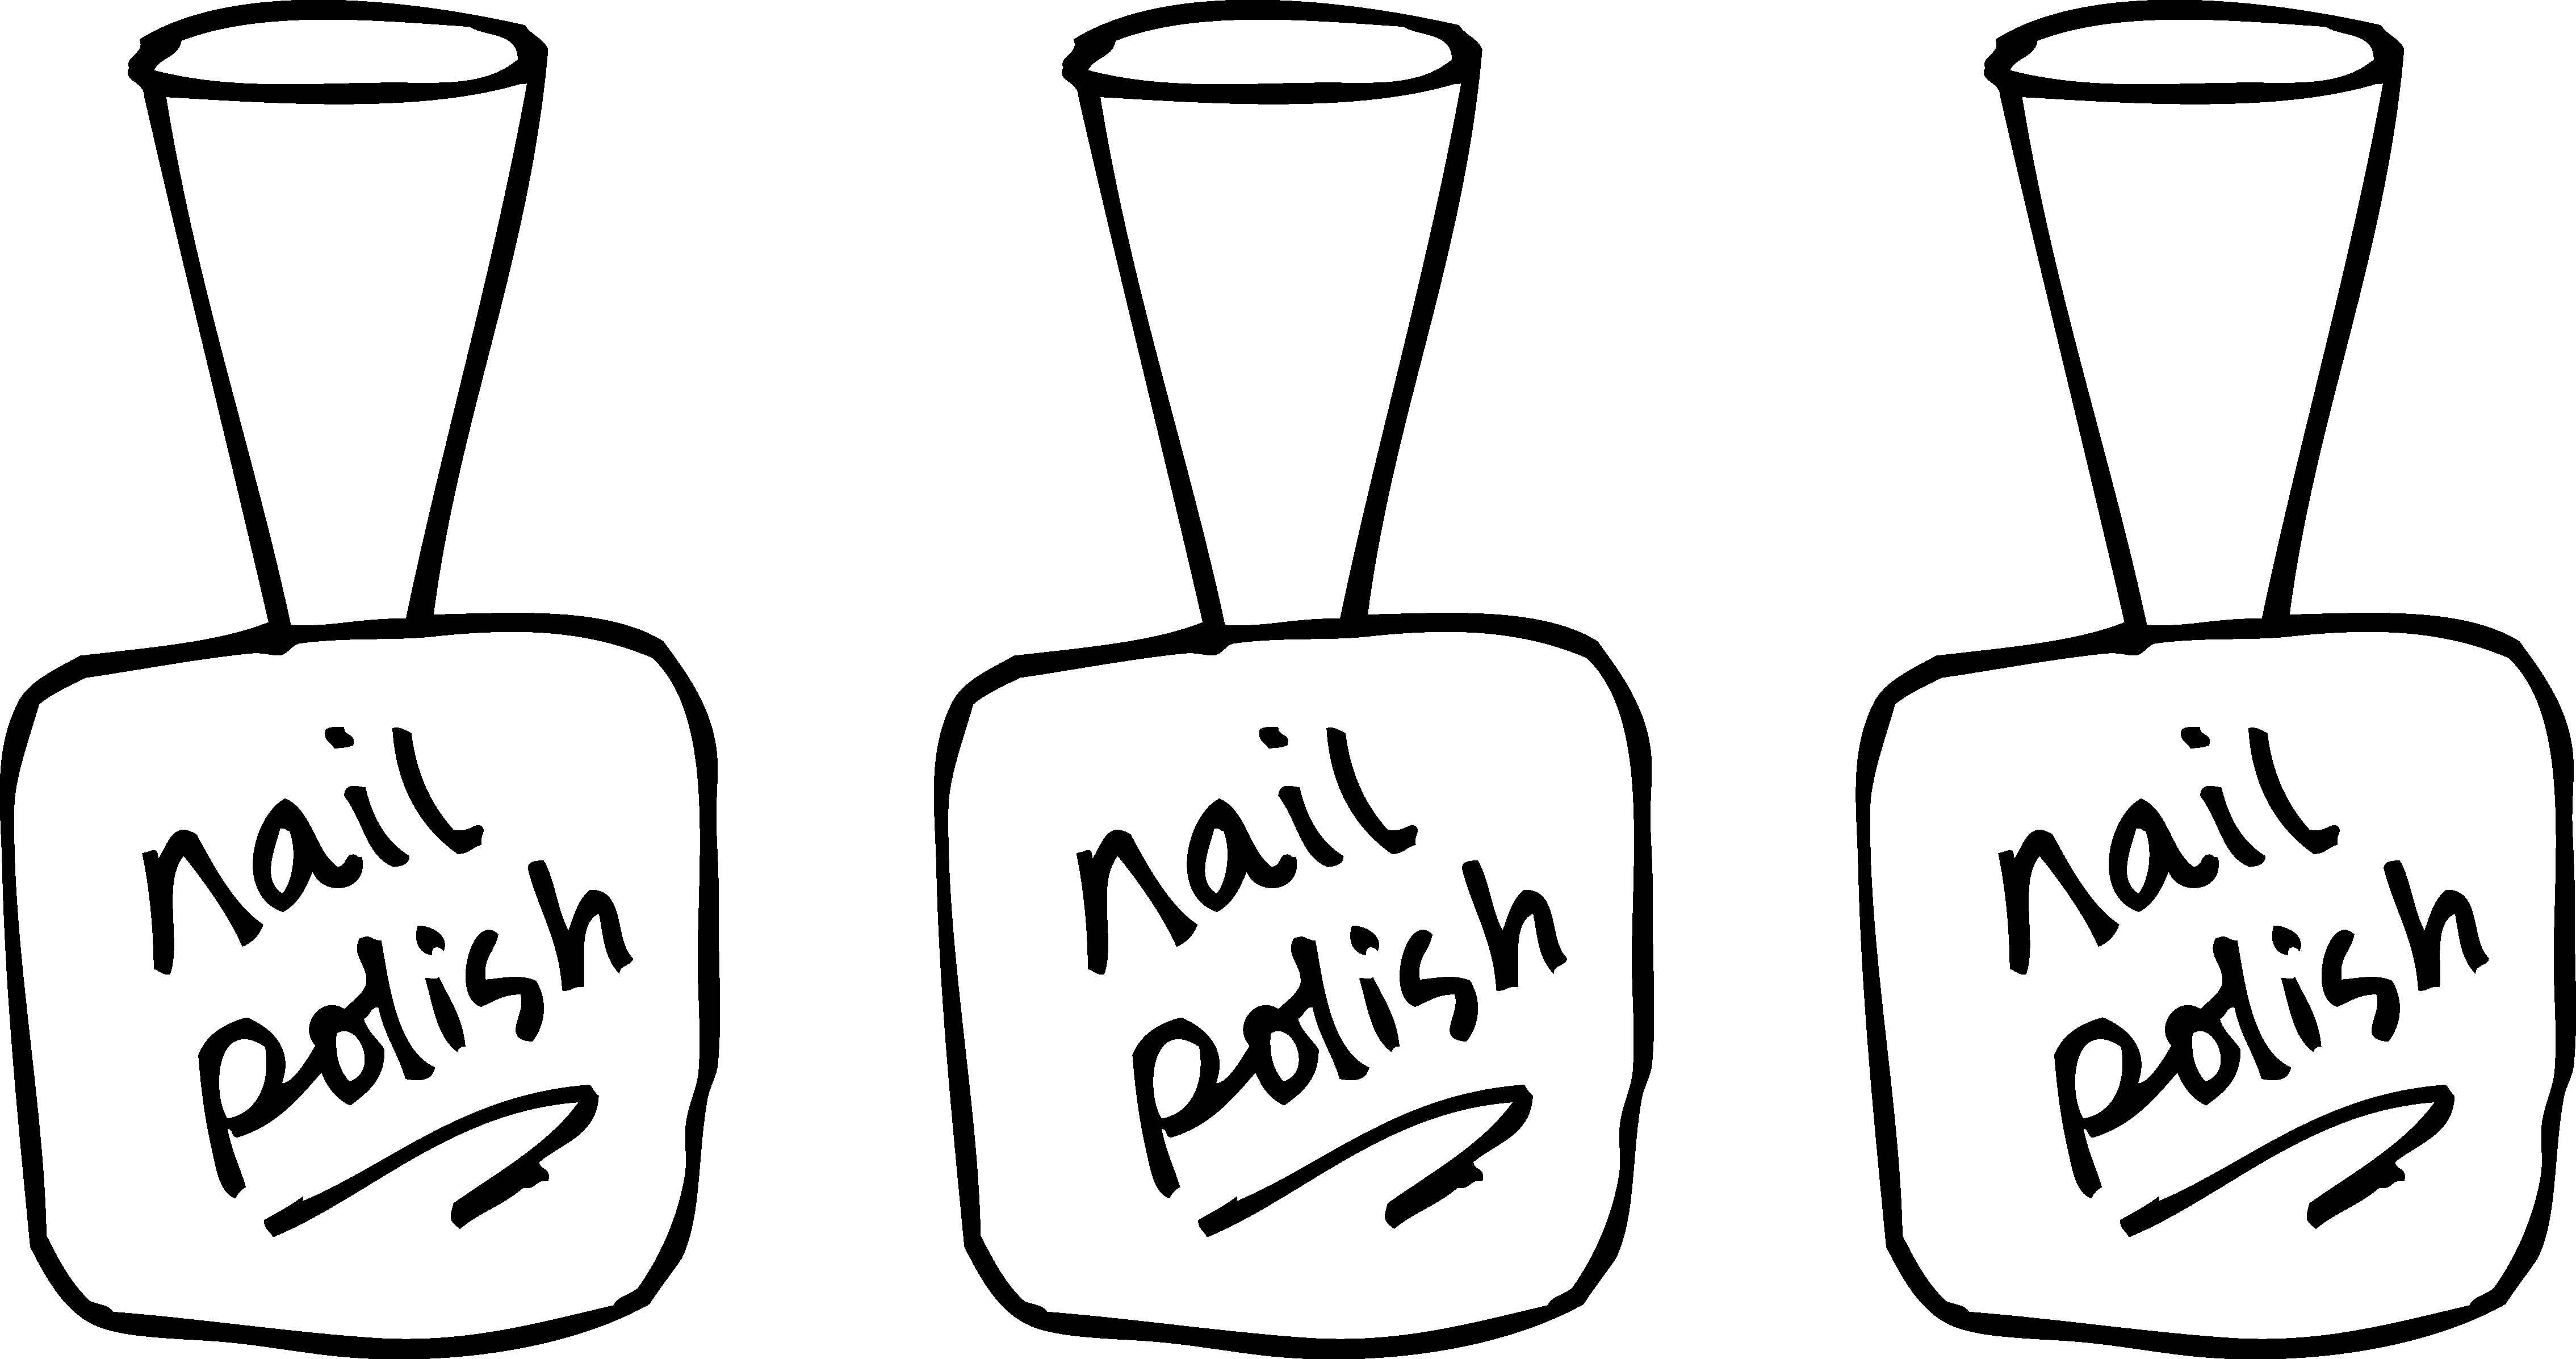 403 forbidden nail polish nail polish colors shape coloring pages nail polish nail polish colors